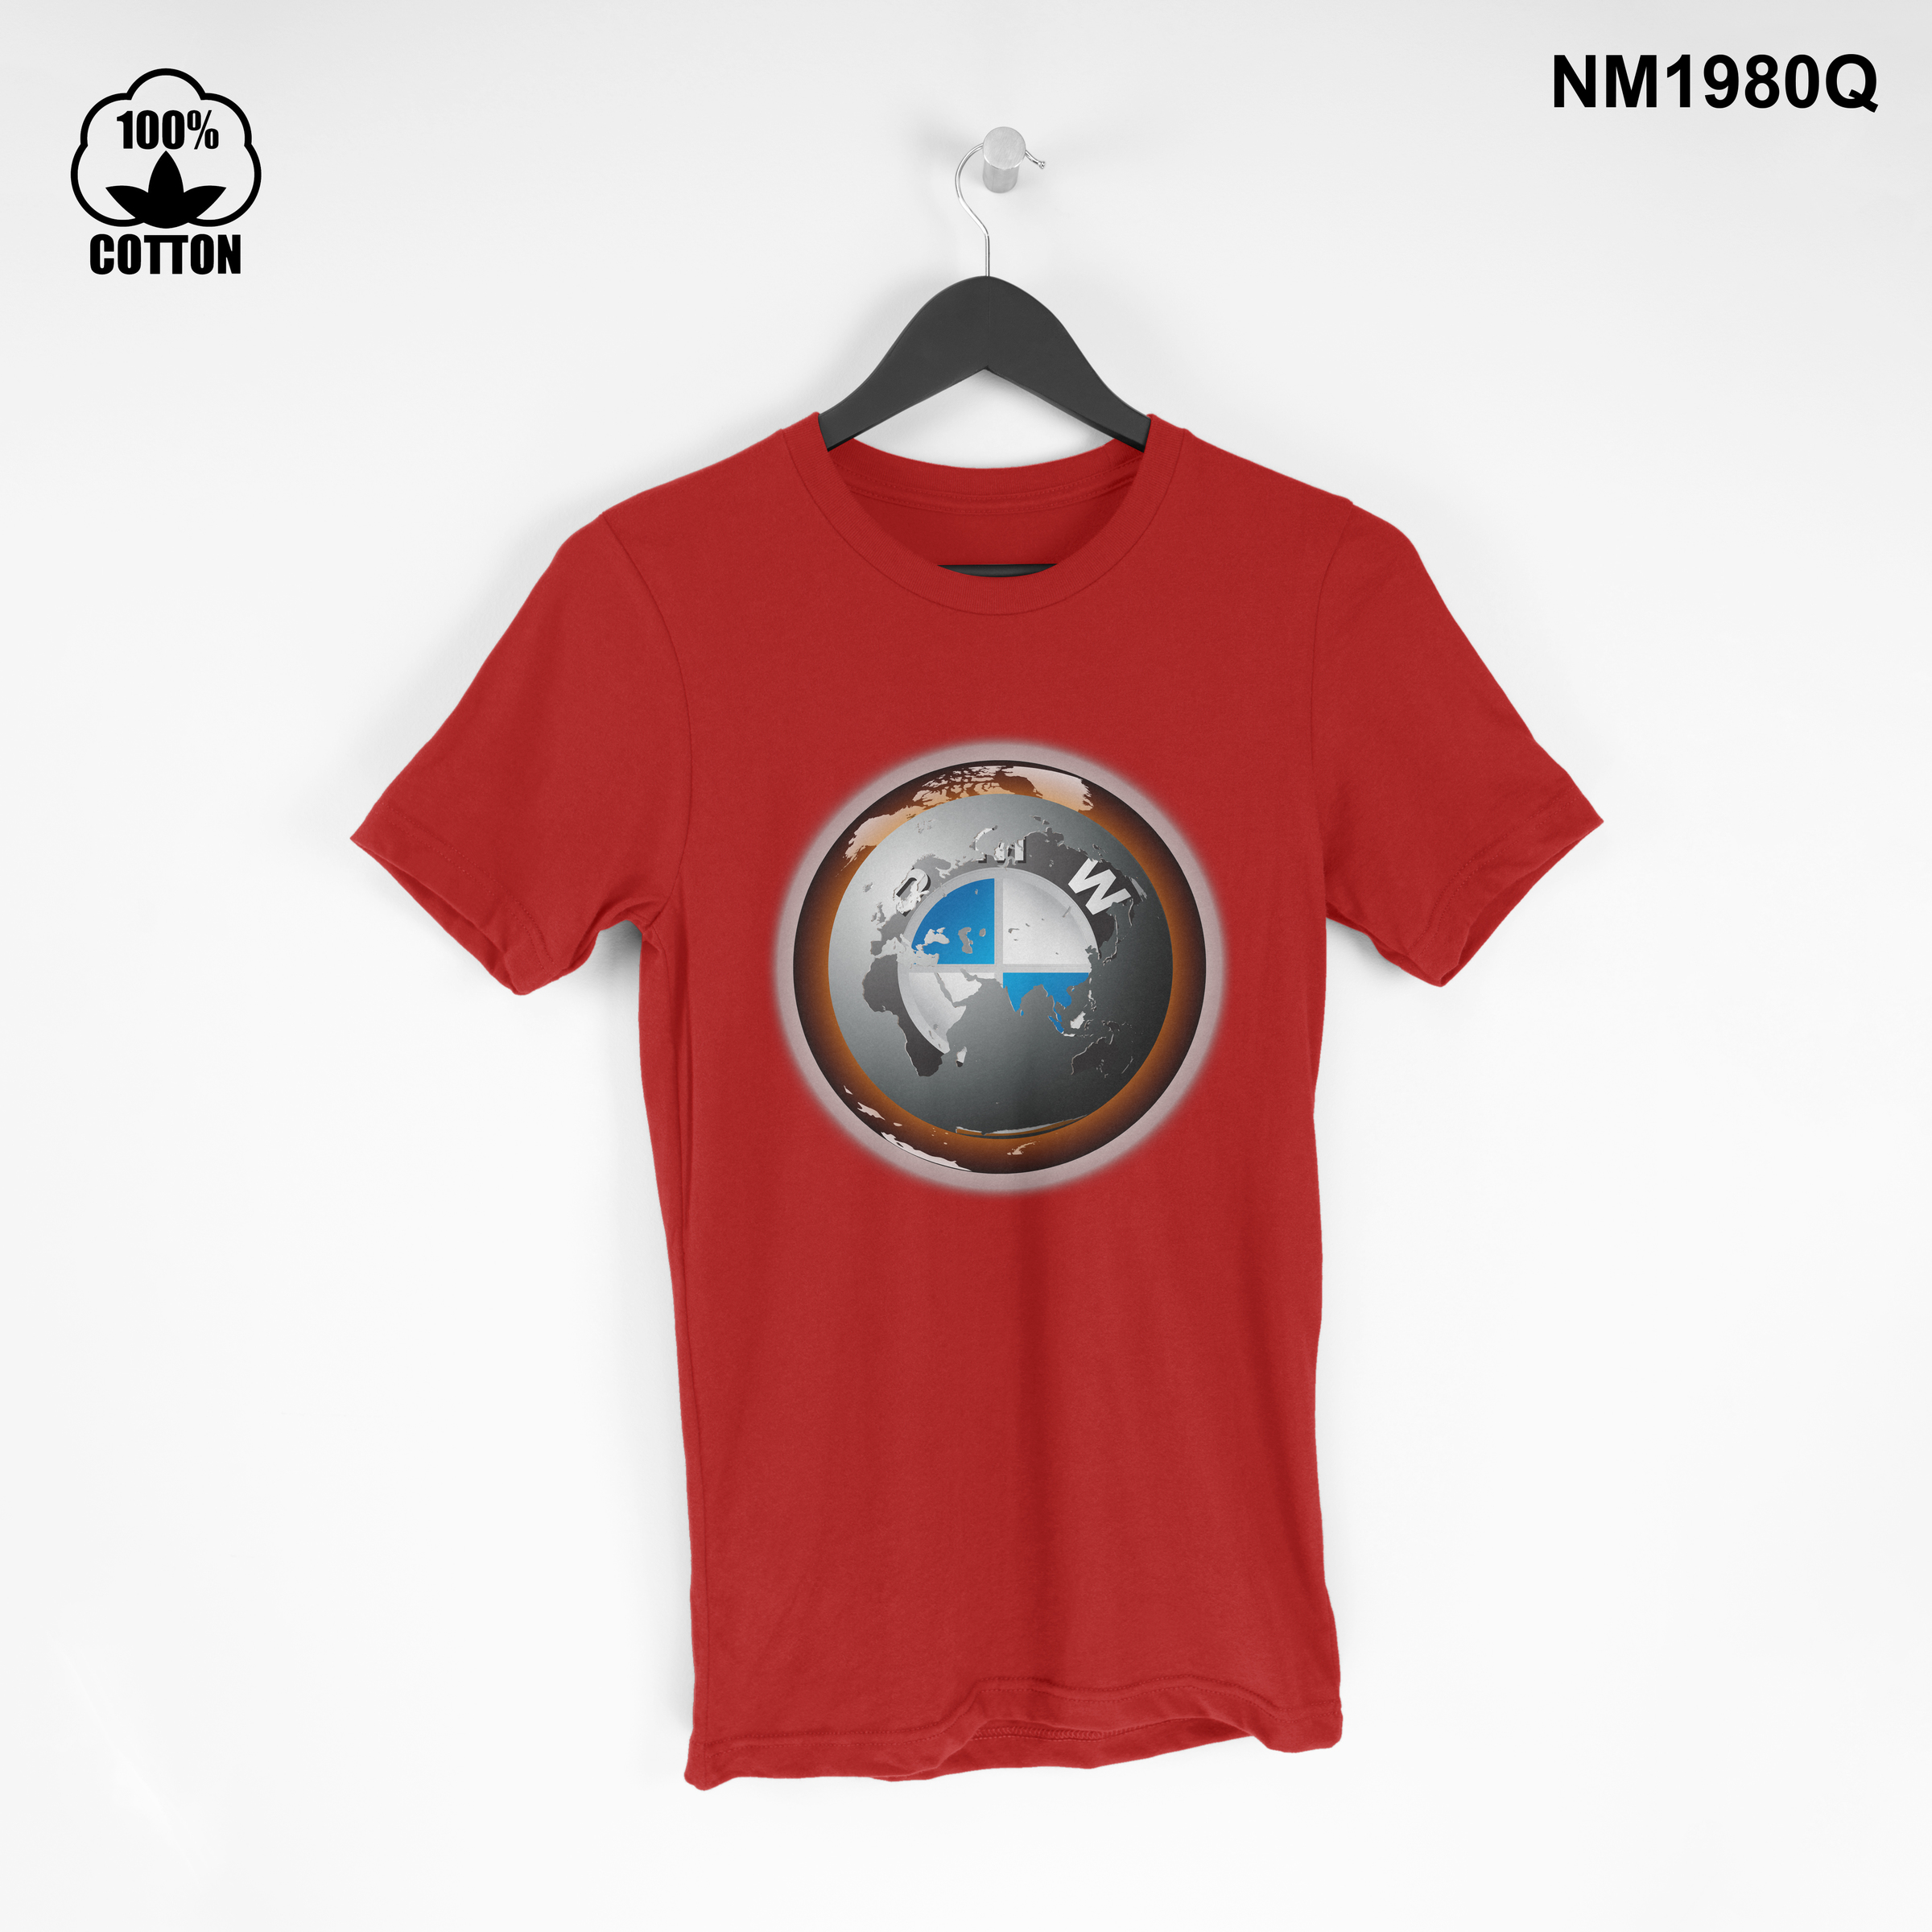 1.31 new item 2019 bmw in the world t Shirt Tee Unisex red.jpg